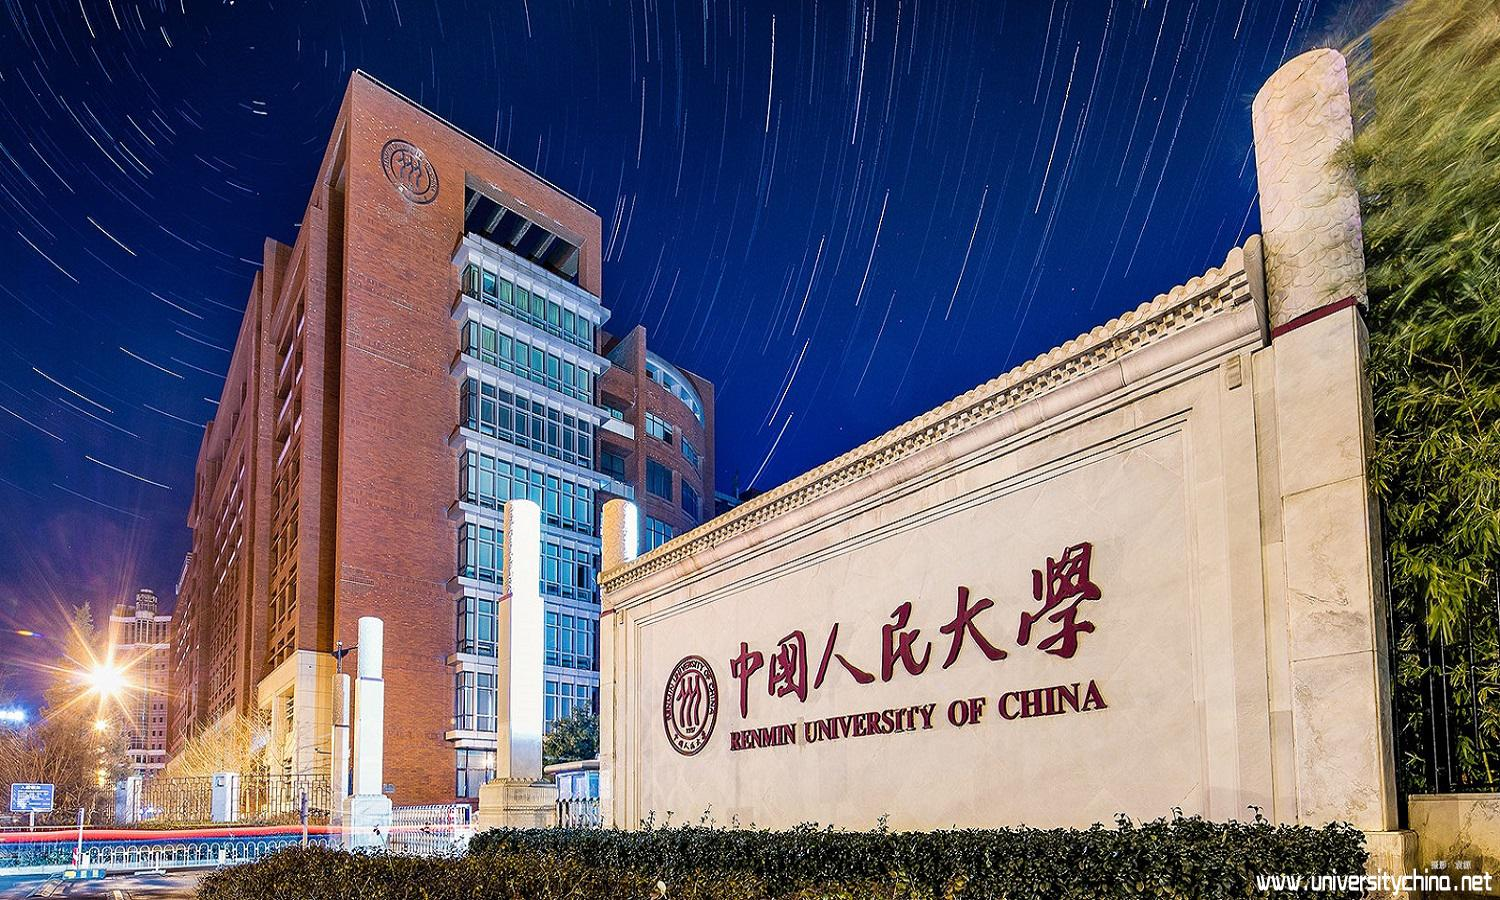 中国人民大学(Renmin University of China)简介